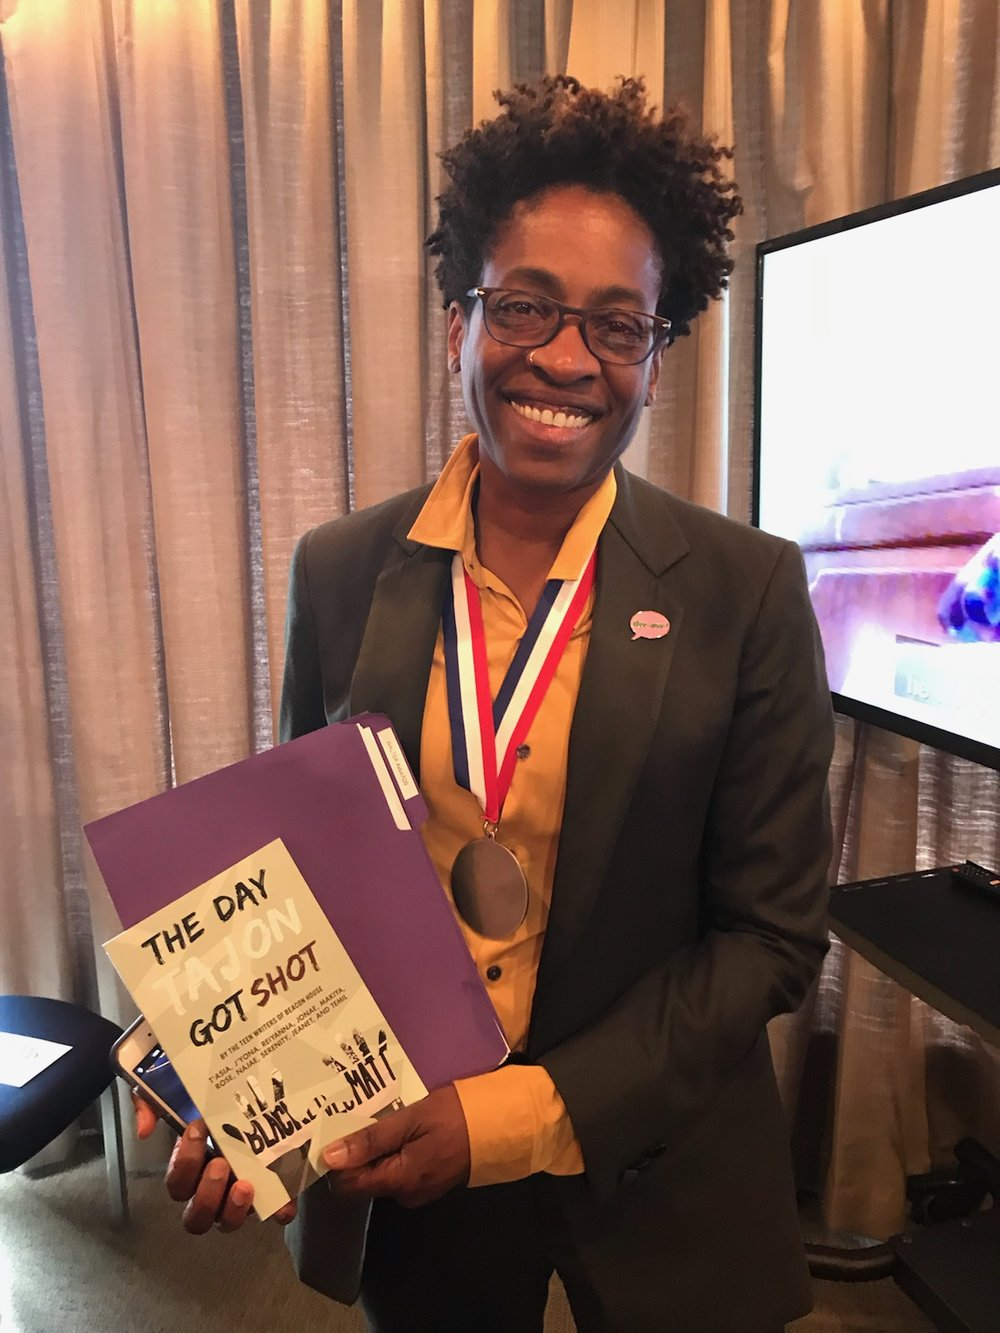 2018-2019 National Ambassador for Young People's Literature, Jacqueline Woodson, proudly displaying her copy of  The Day Tajon Got Shot